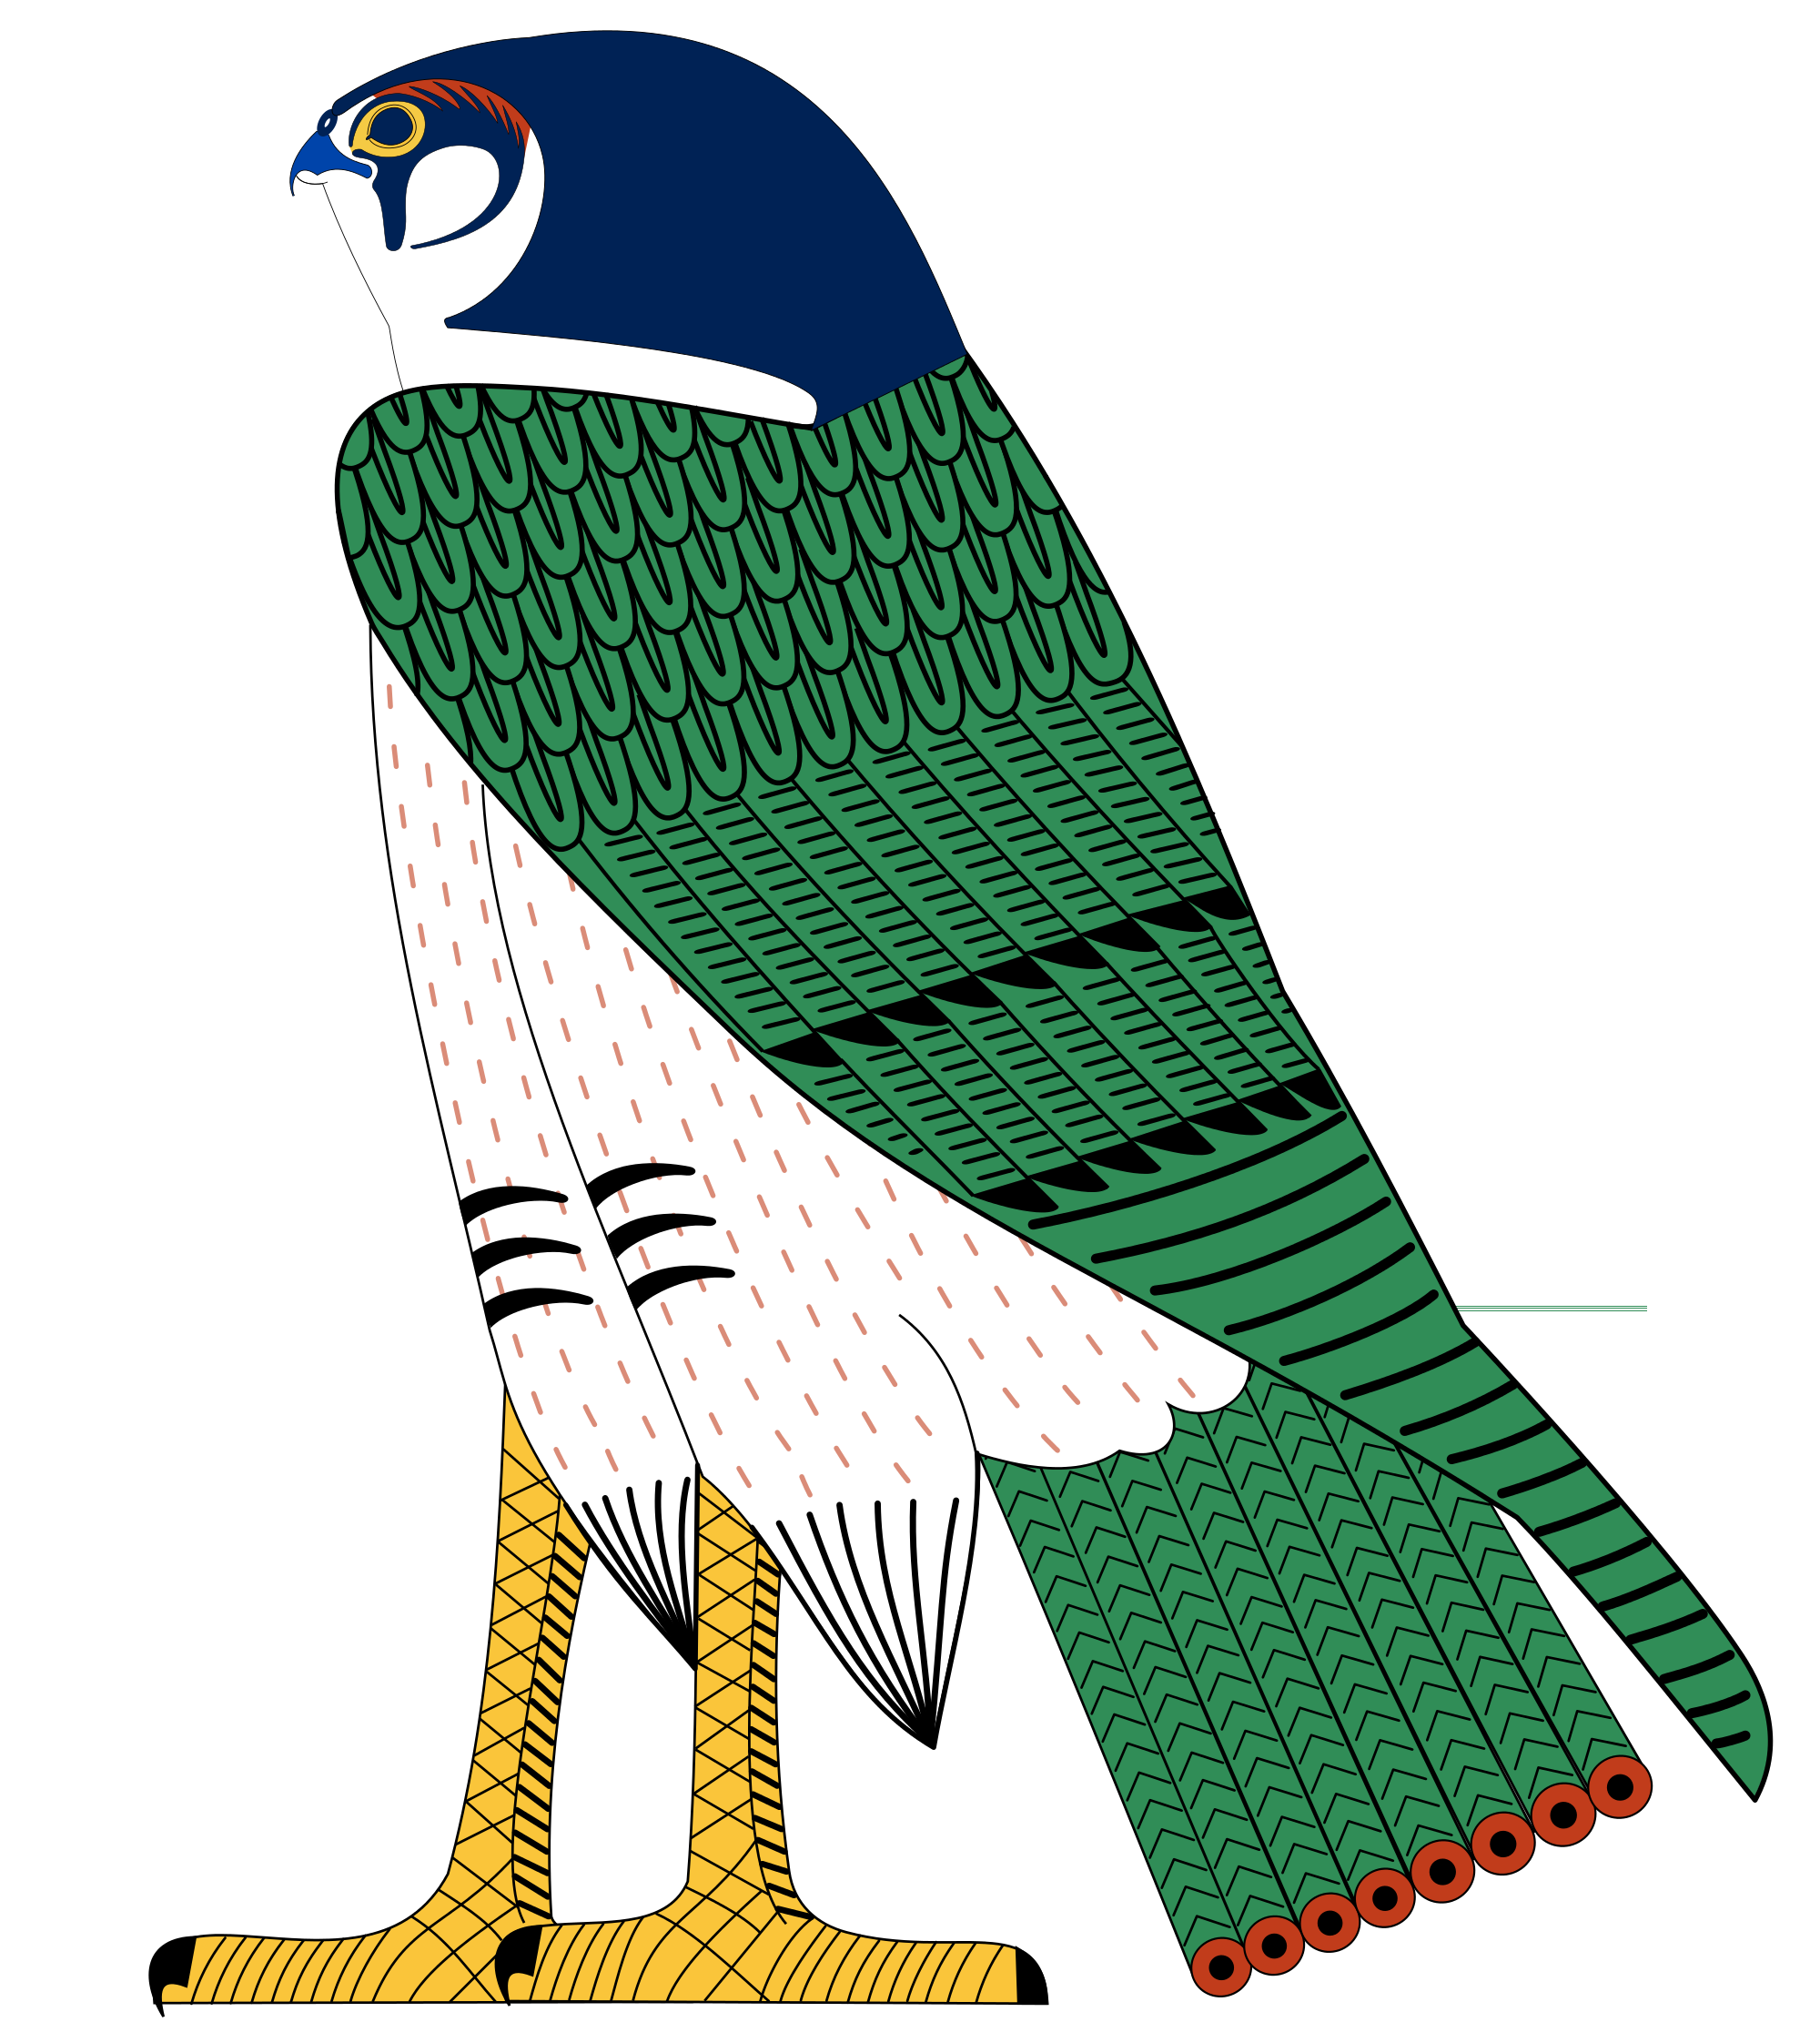 Falcon clipart creative. Which egyptian god are